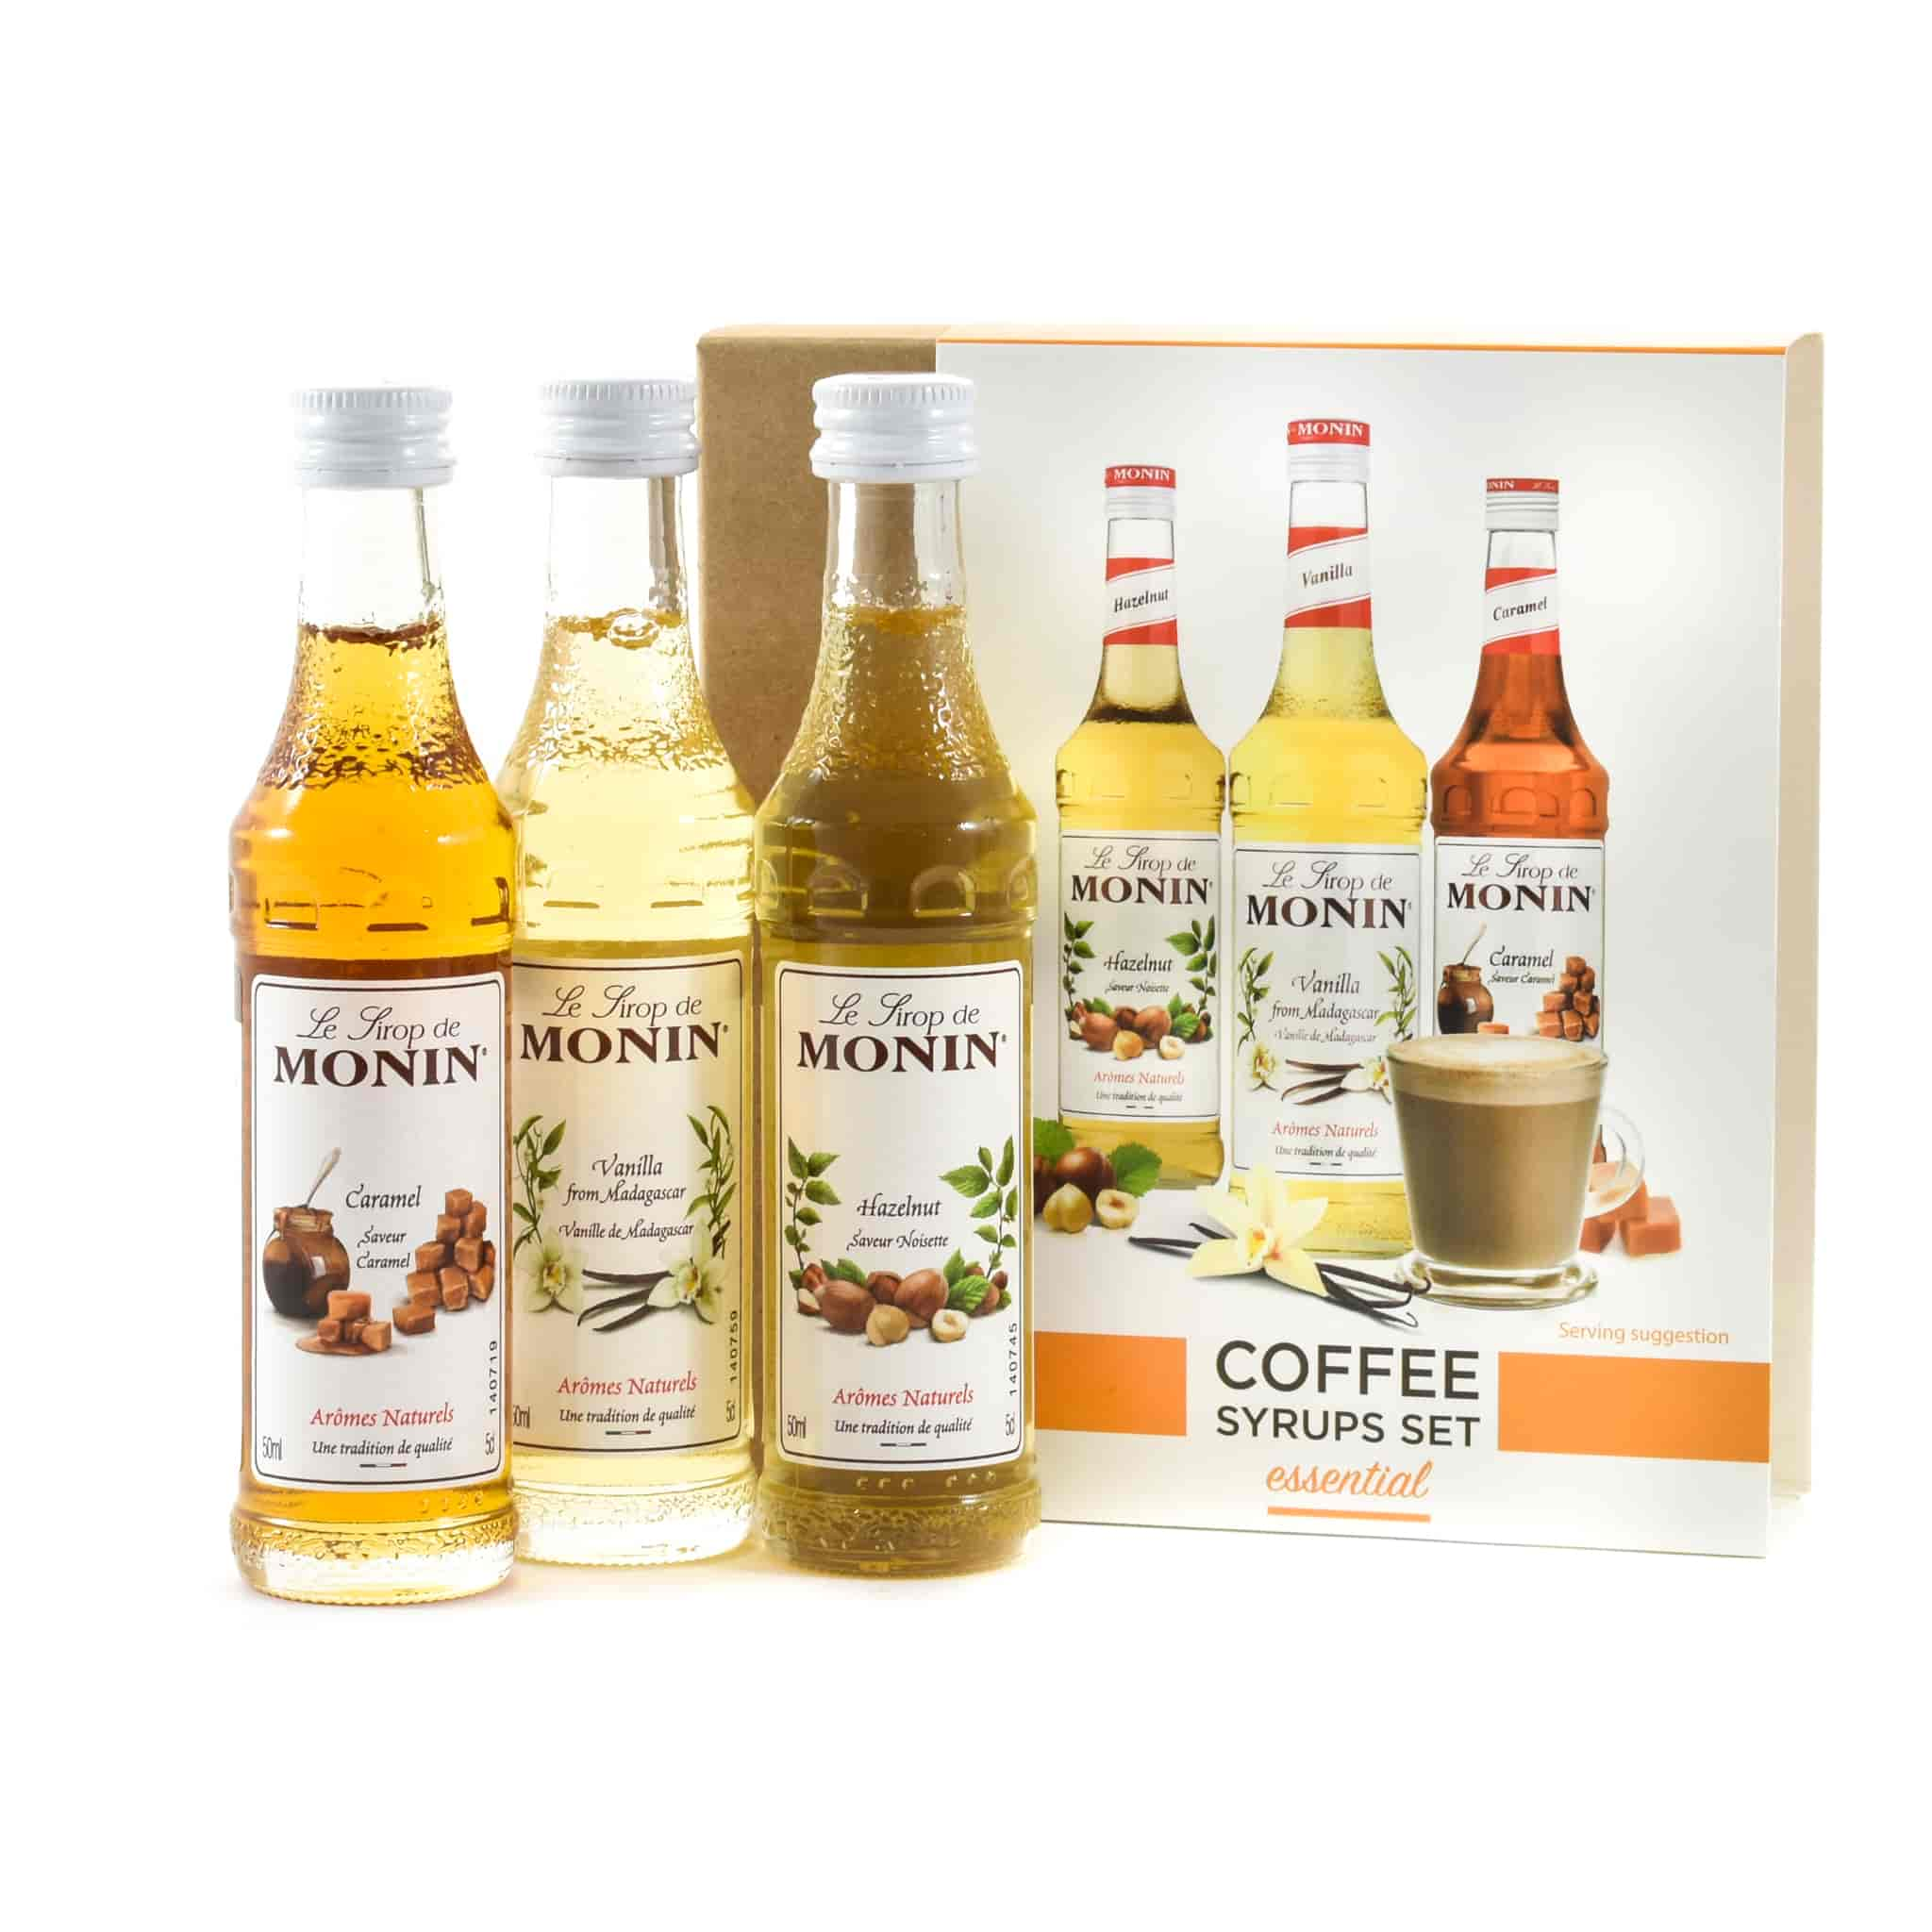 Monin Coffee Syrup Set